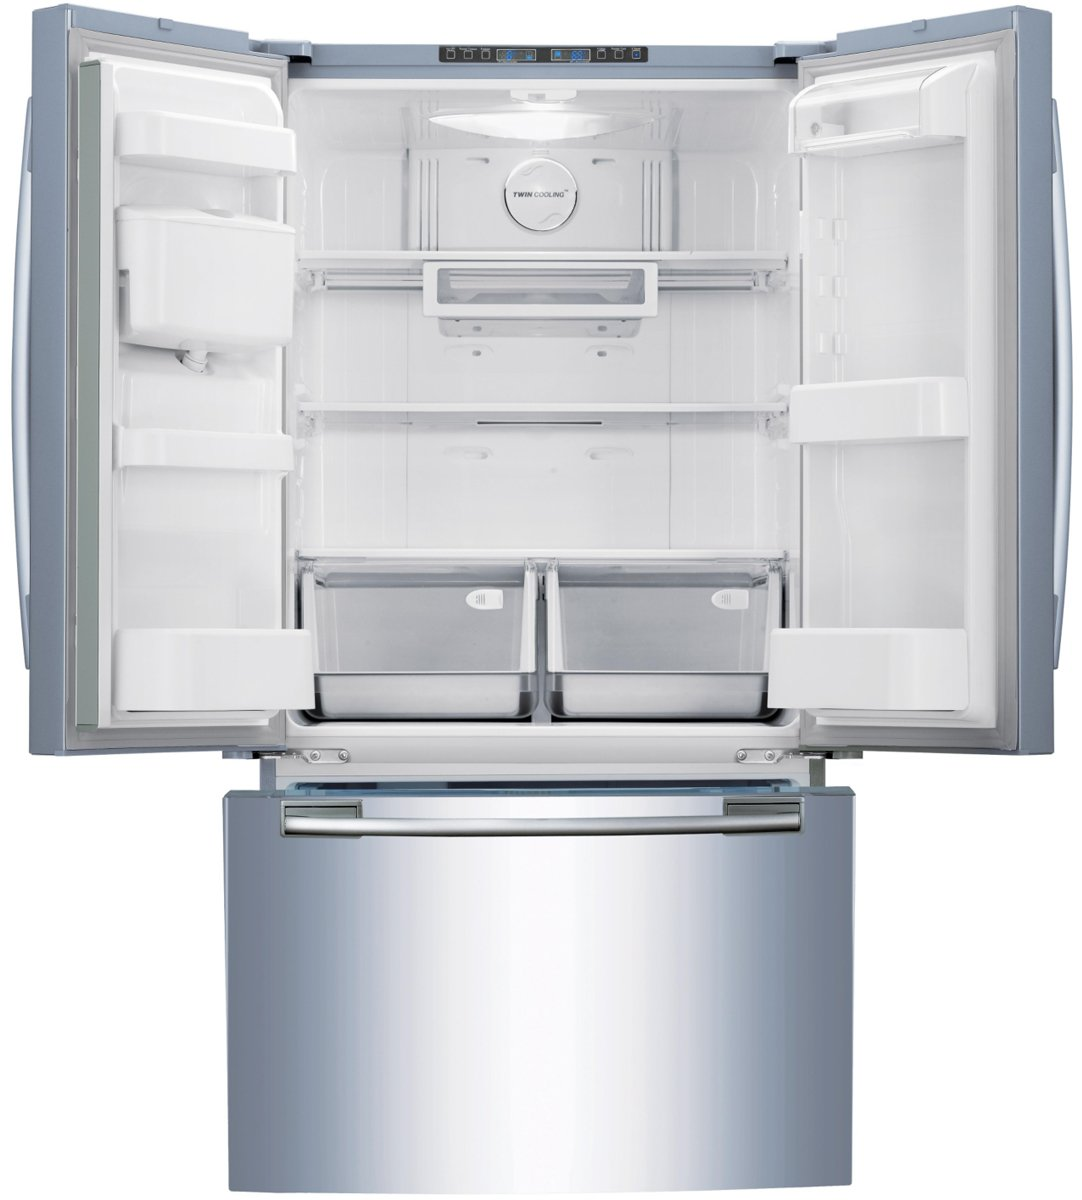 Samsung srf579dls 579l french door fridge appliances online samsung srf579dls 579l french door fridge unfortunately this product is not available product video rubansaba